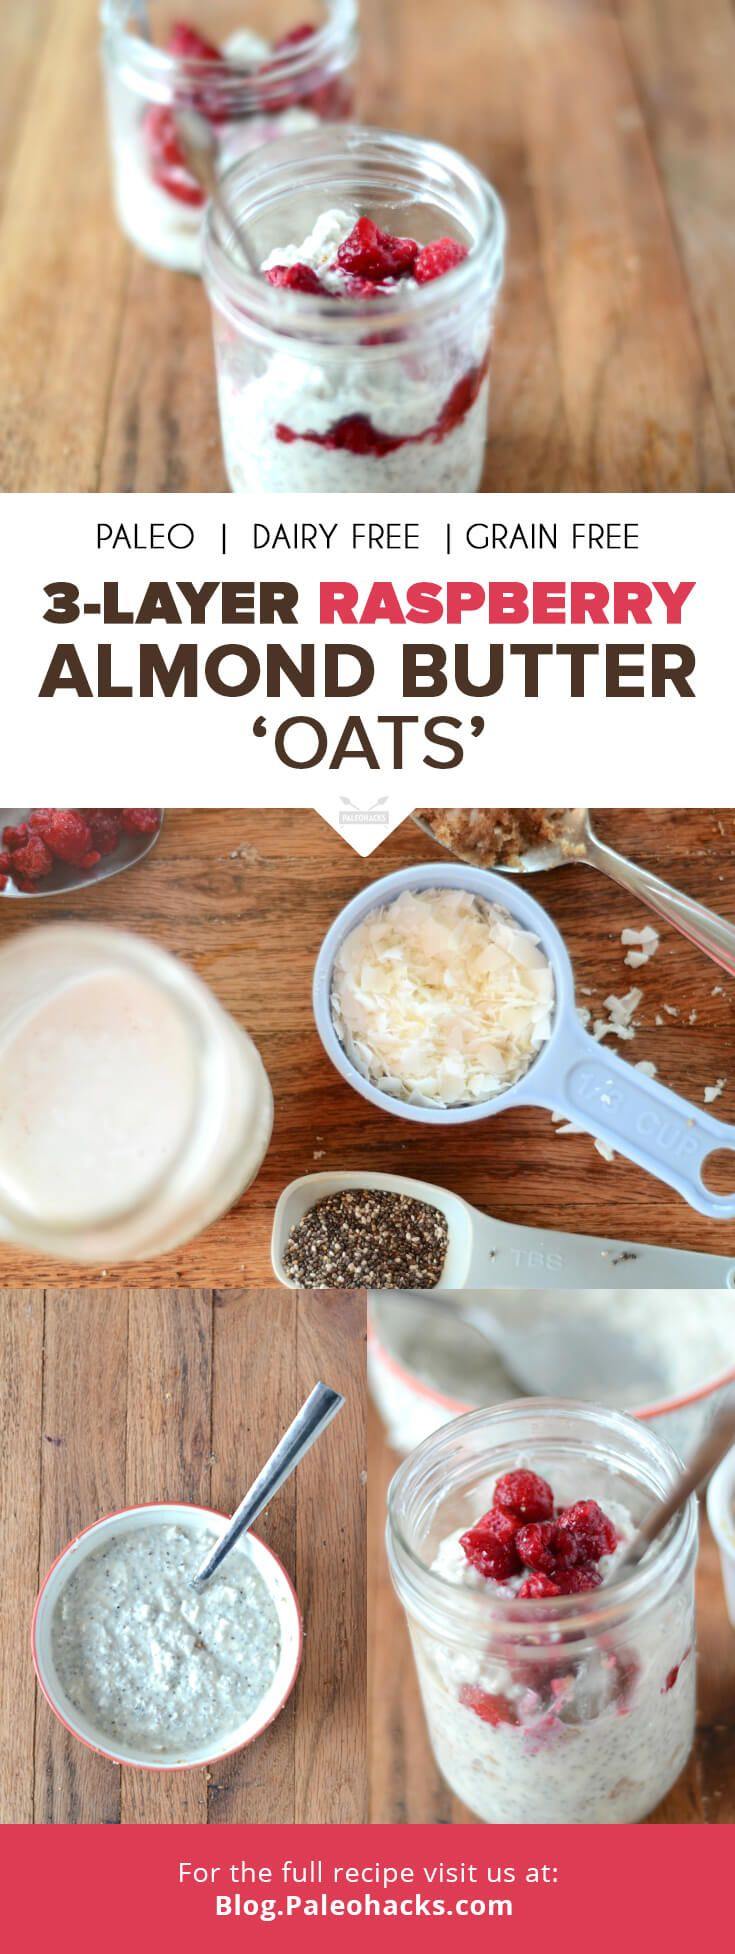 "This recipe is my version of an ""oats"" breakfast, complete with fresh berries and creamy almond butter! The chia seeds and coconut create an oatmeal-like texture, making for a filling and healthy meal. For the full recipe, visit us here: http://paleo.co/RABOats #paleohacks #paleo"